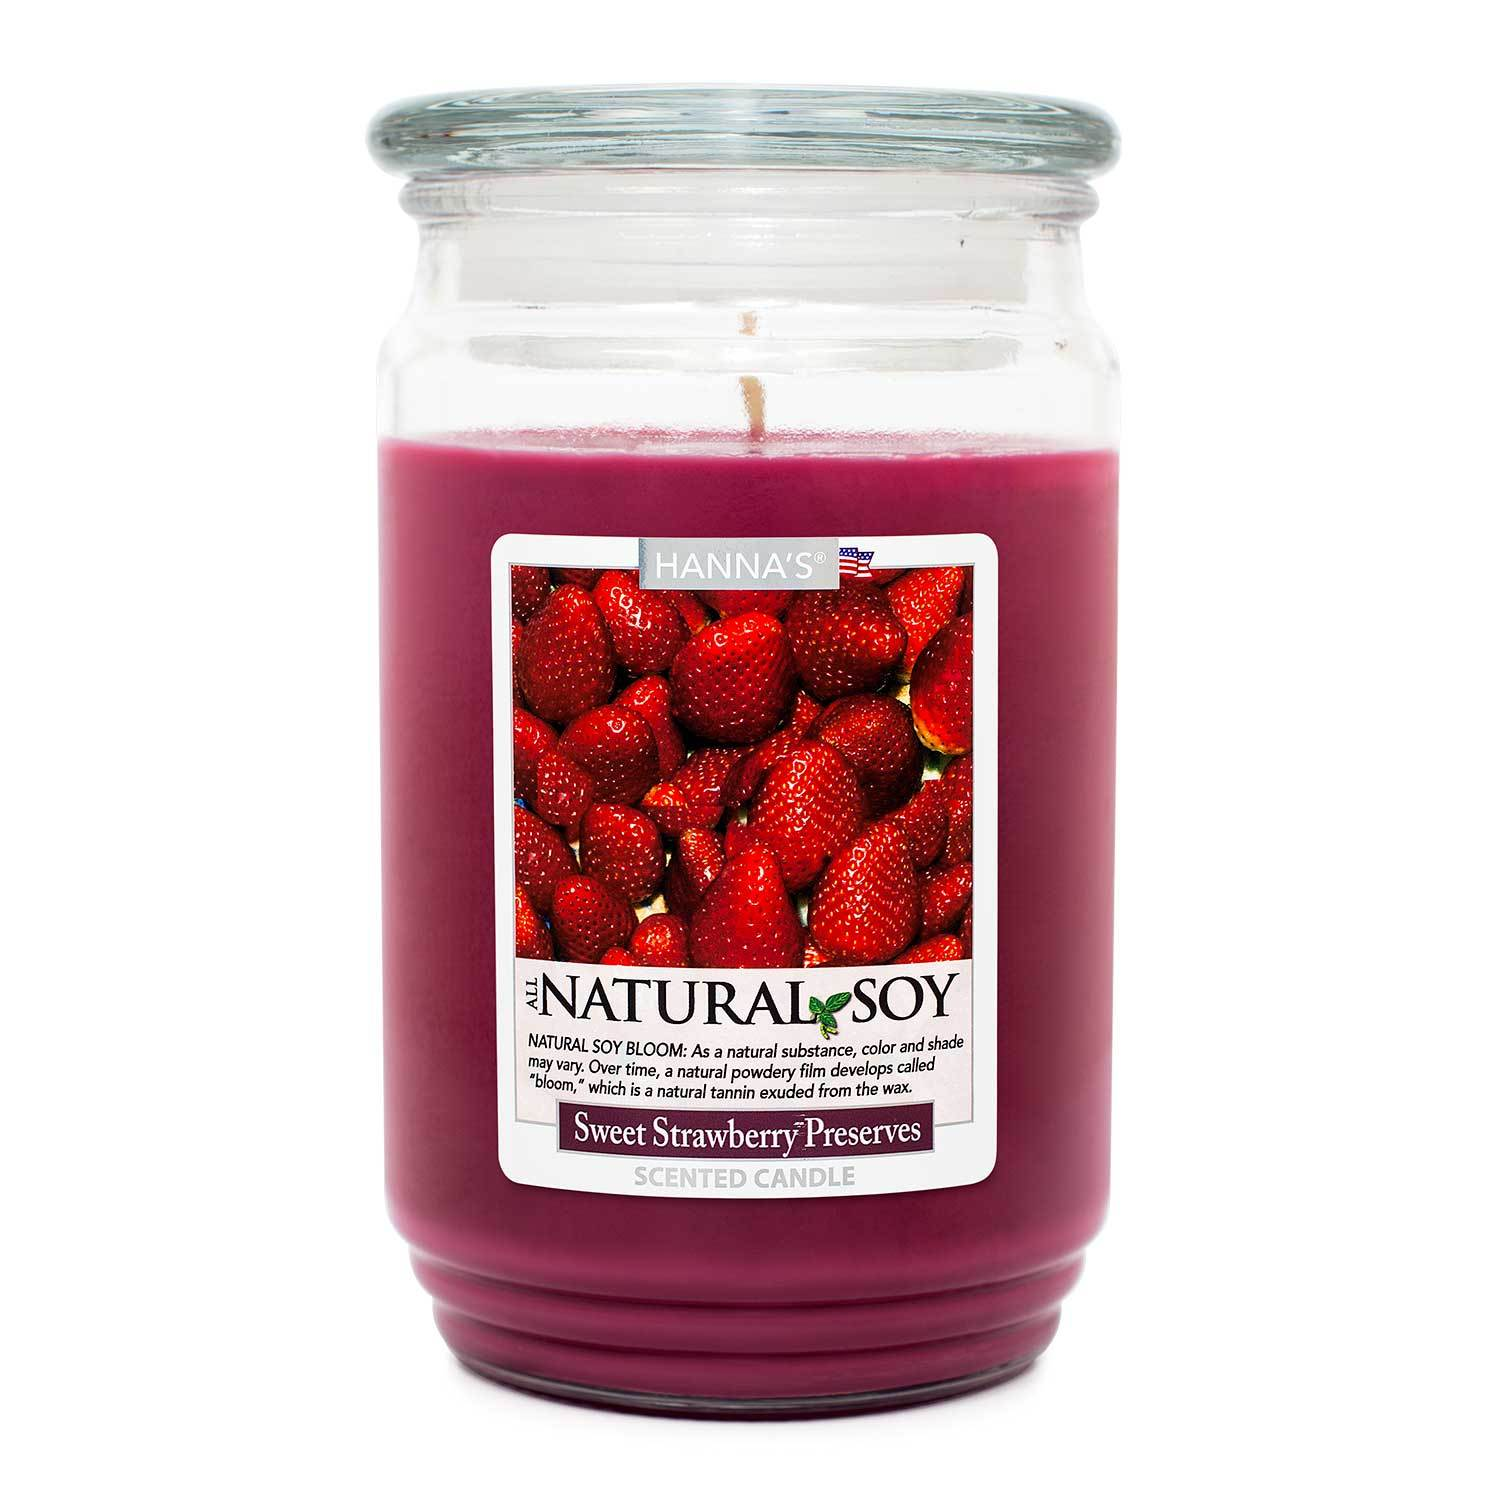 Natural Soy Sweet Strawberry Preserves Scented Soy Candle 100% Soy Candles Candlemart.com $ 12.99